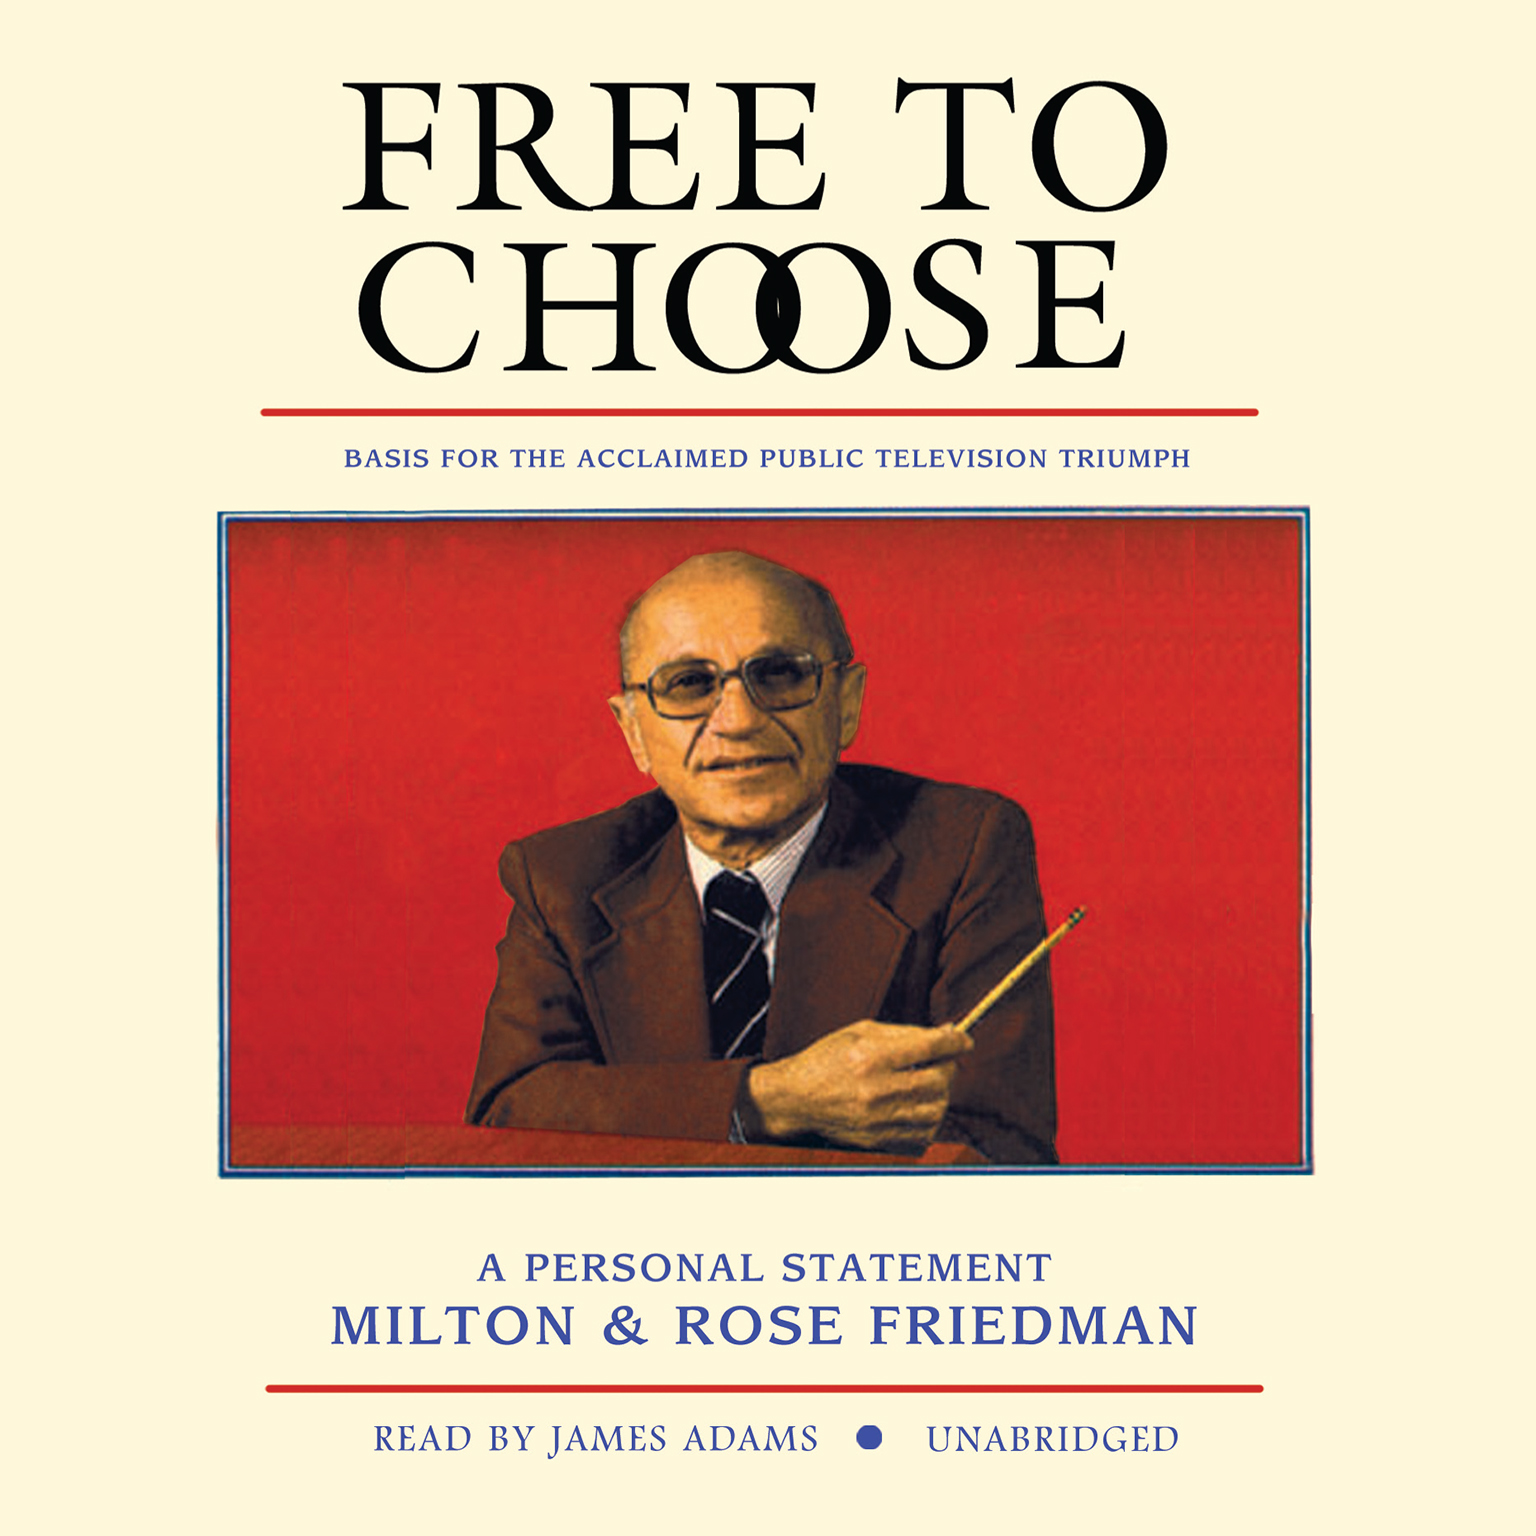 hear to choose audiobook by milton friedman for just  extended audio sample to choose a personal statement audiobook by milton friedman